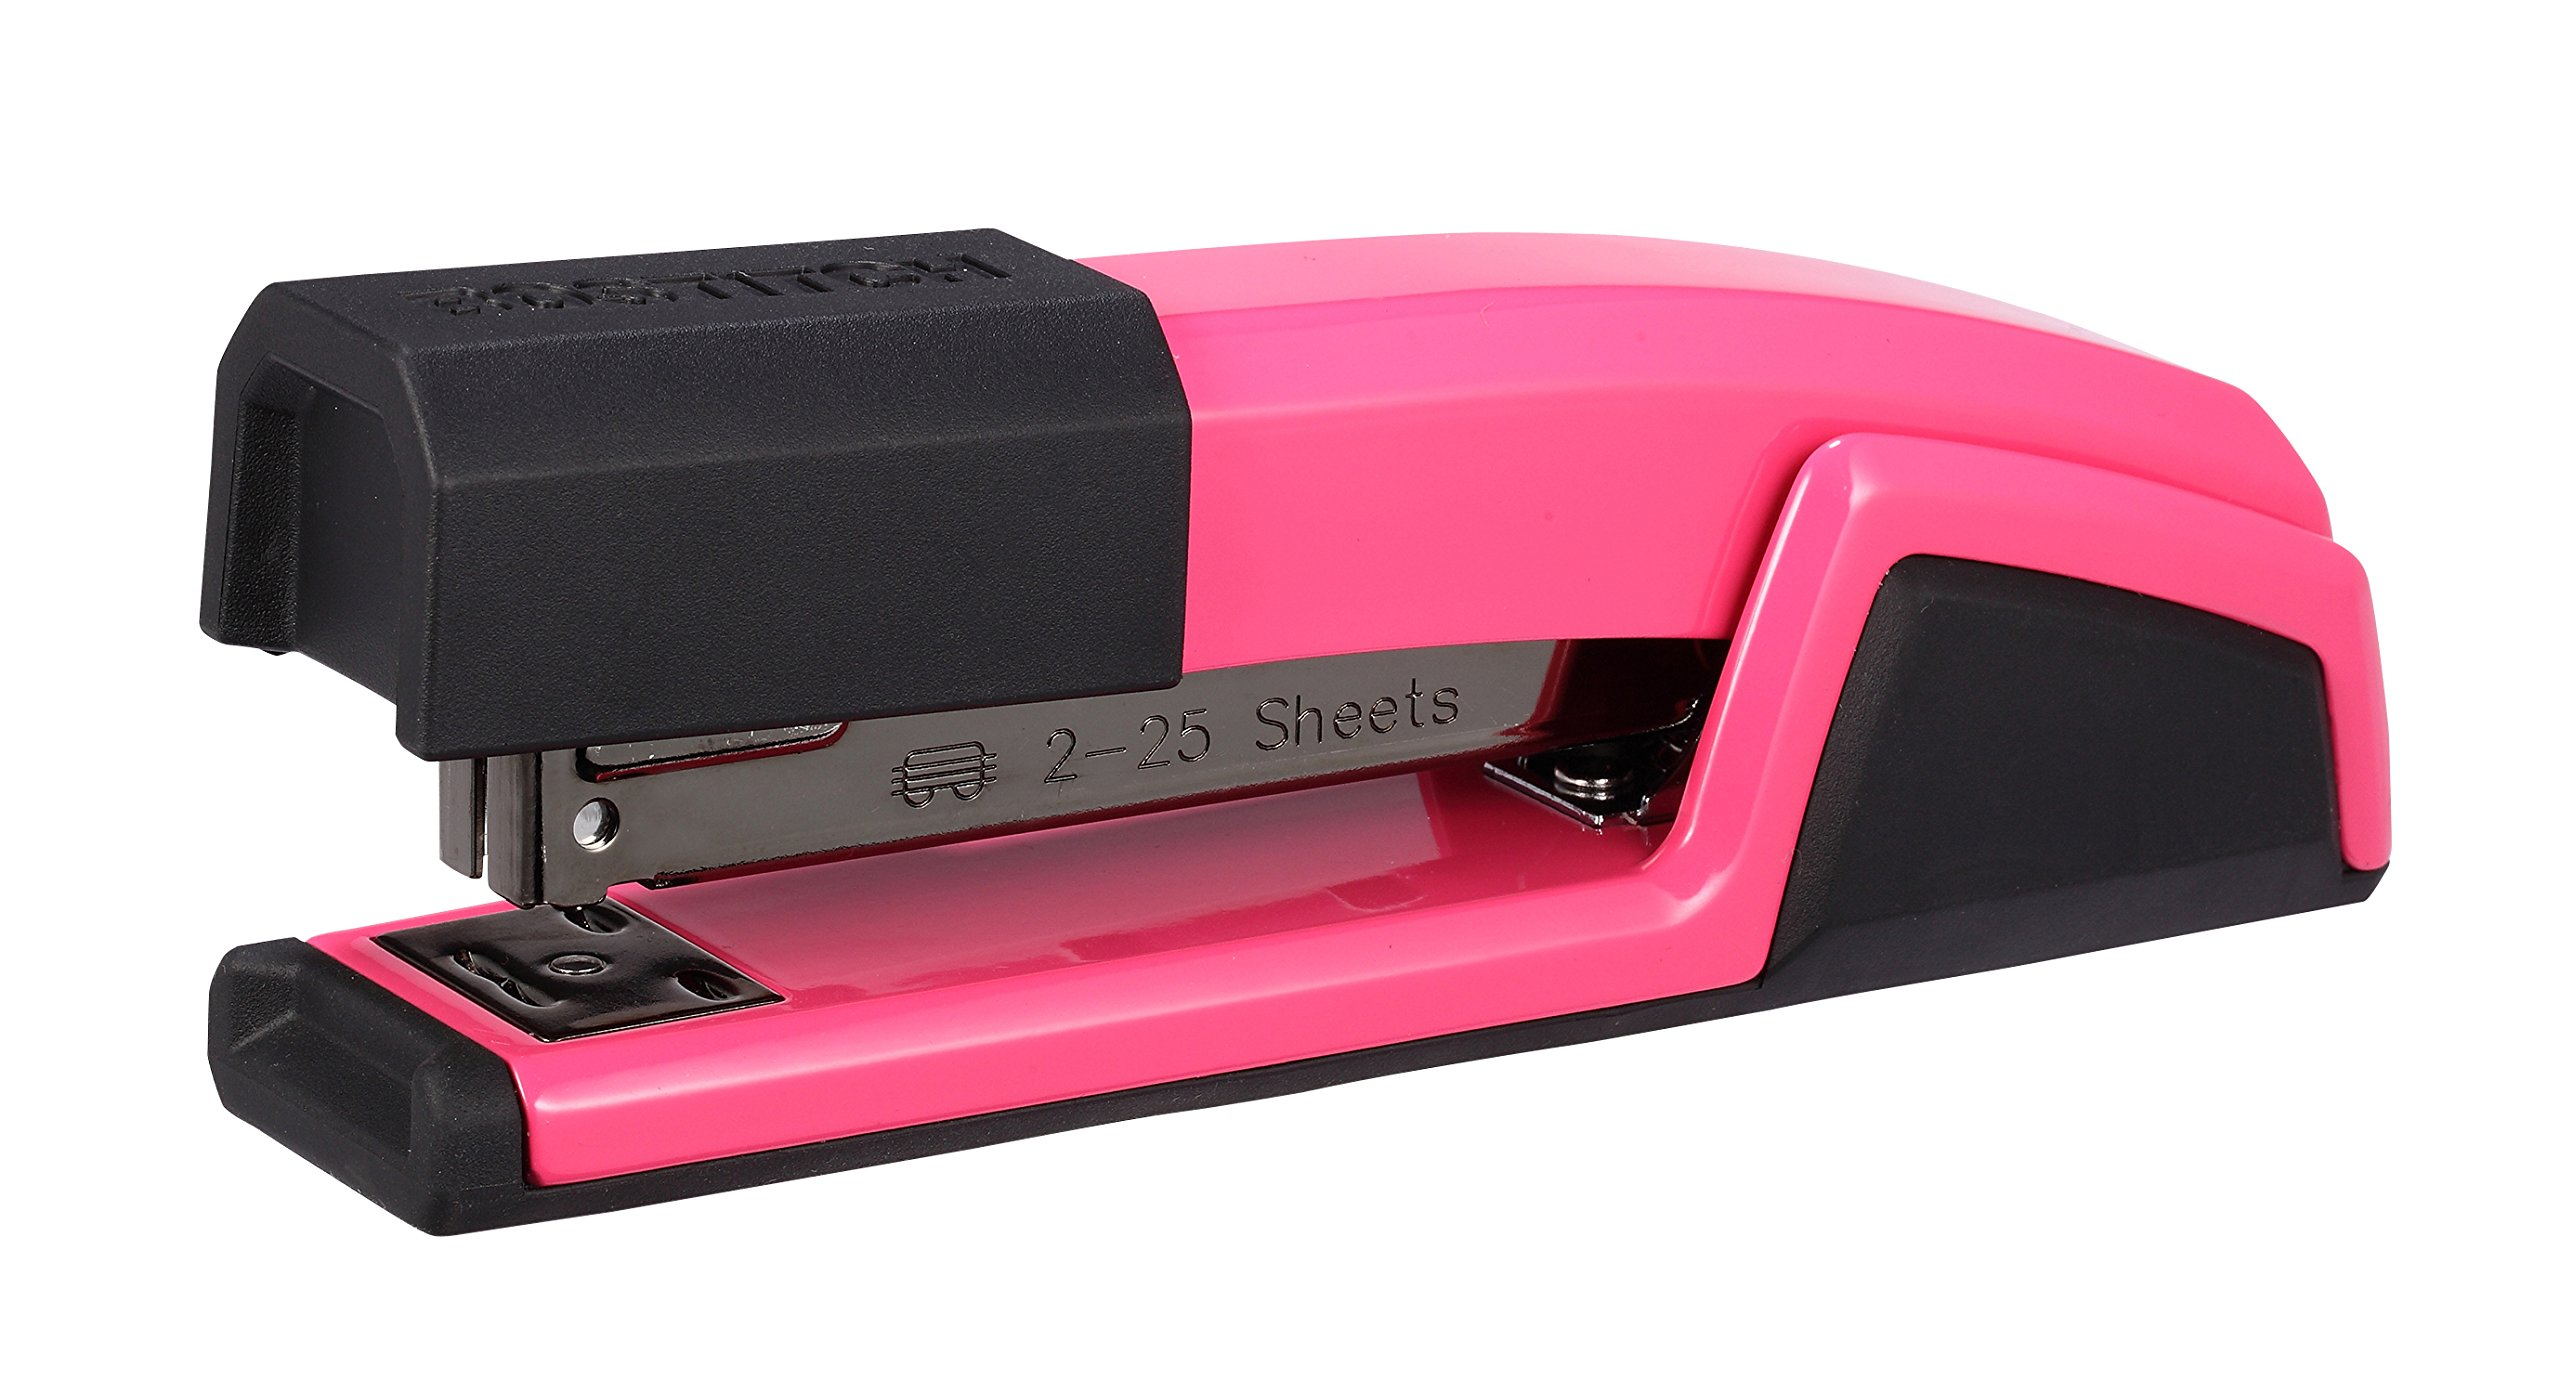 Bostitch Epic All Metal 3 in 1 Stapler with Integrated Remover & Staple Storage, Pink (B777-PINK) by Bostitch Office